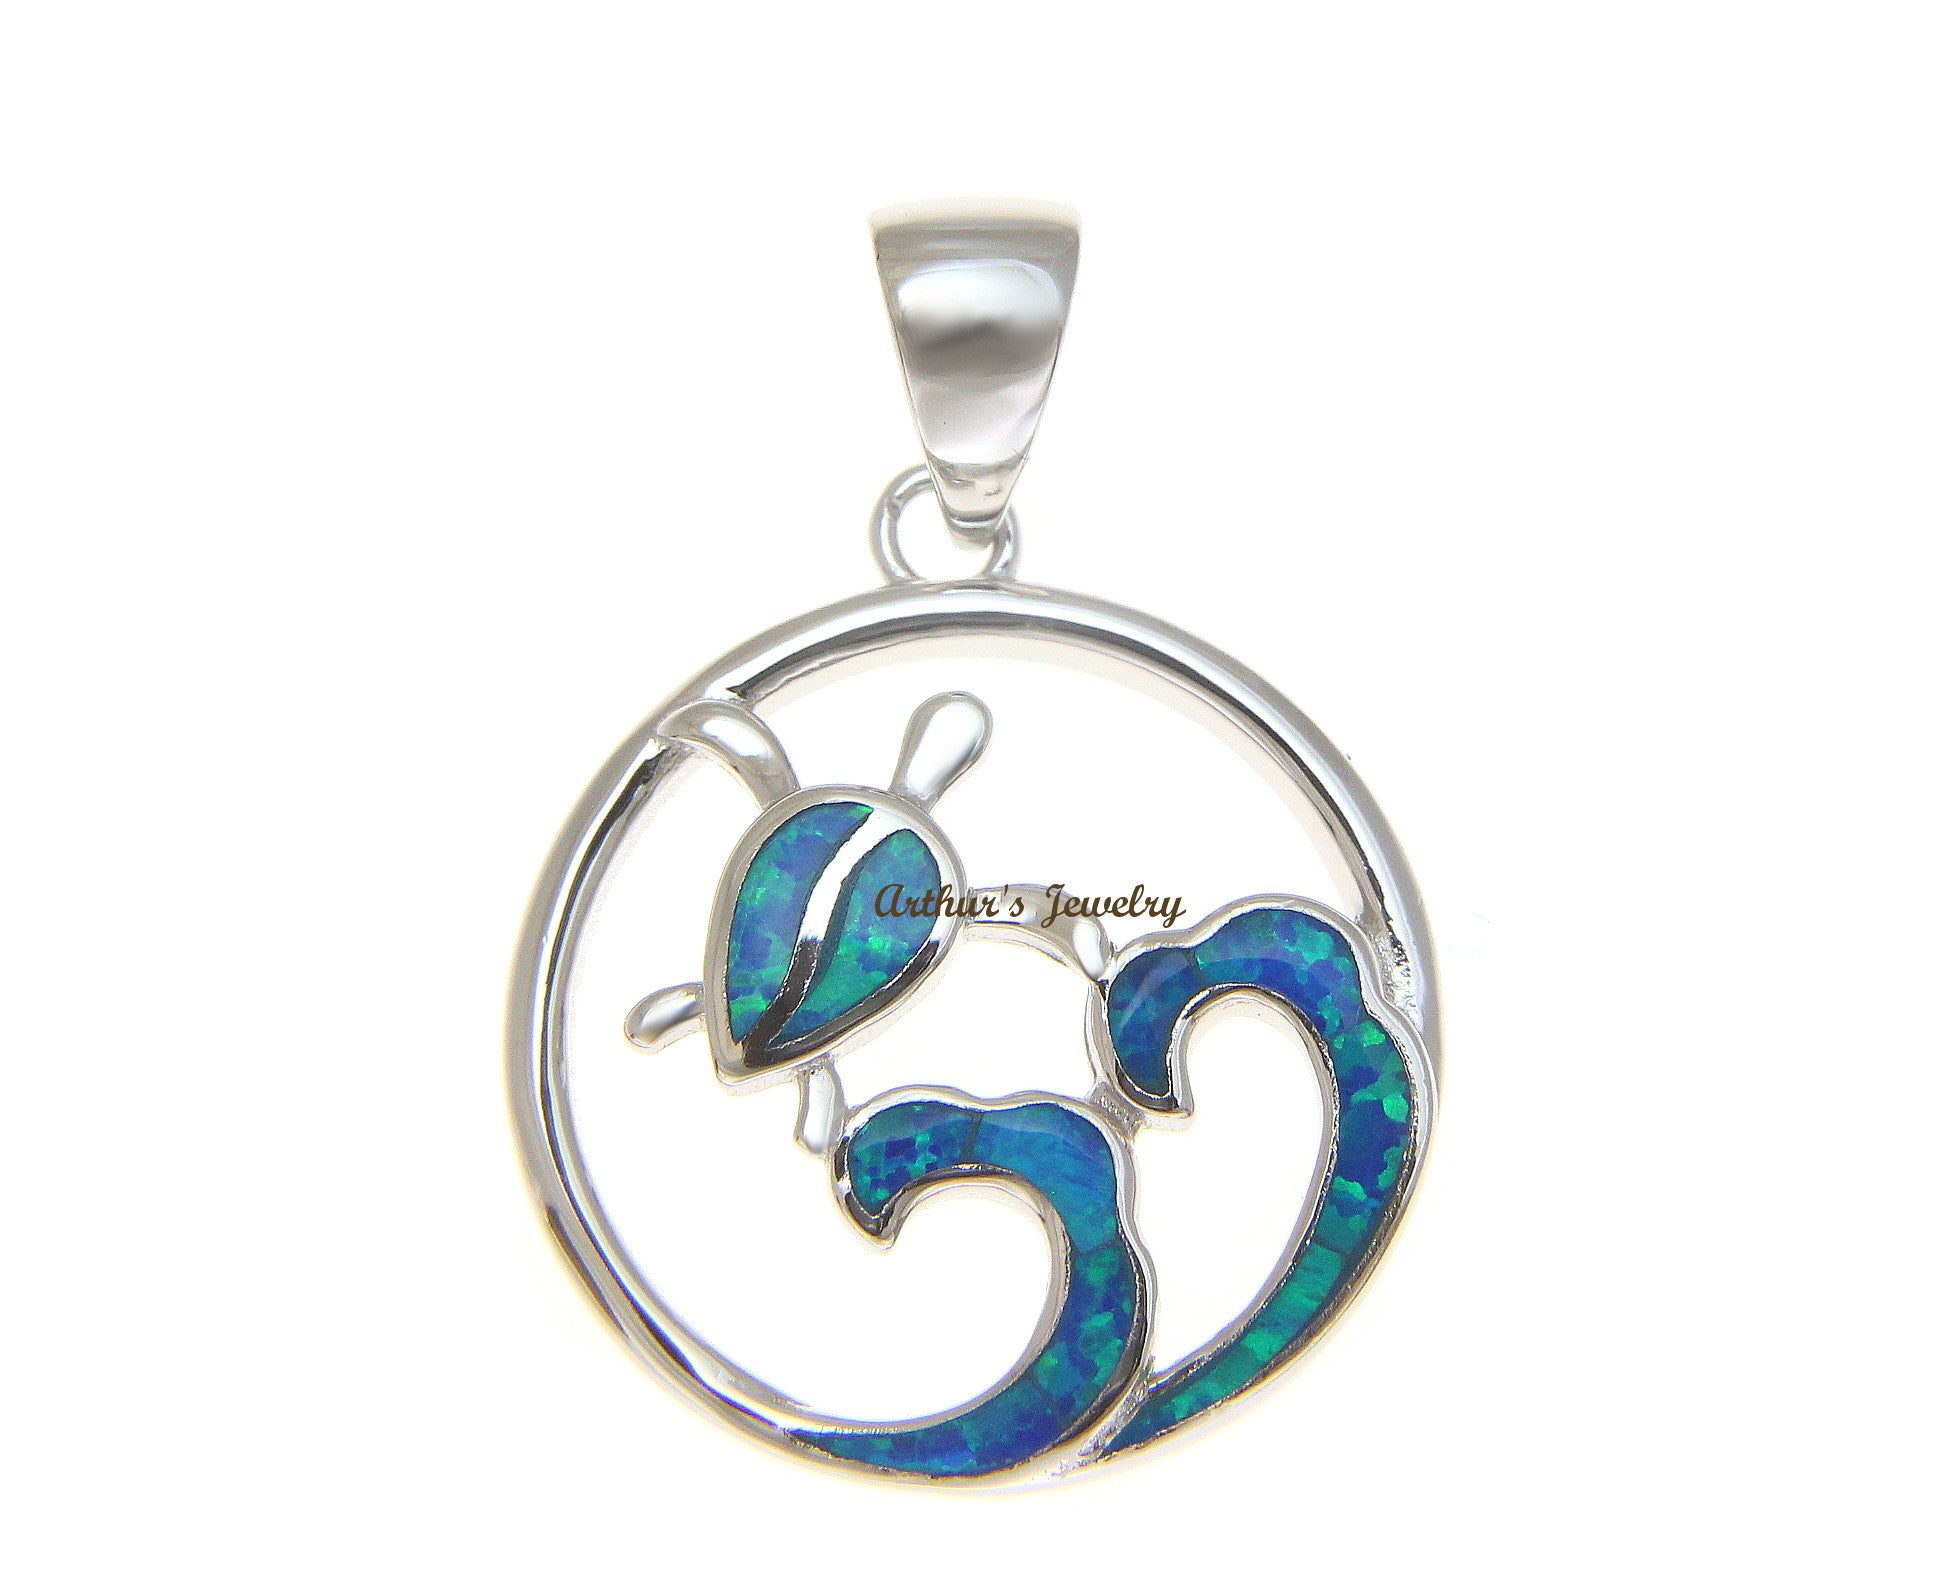 wave rhodium products sterling silver opal hawaiian small charm a aspc sop blue ocean pendant